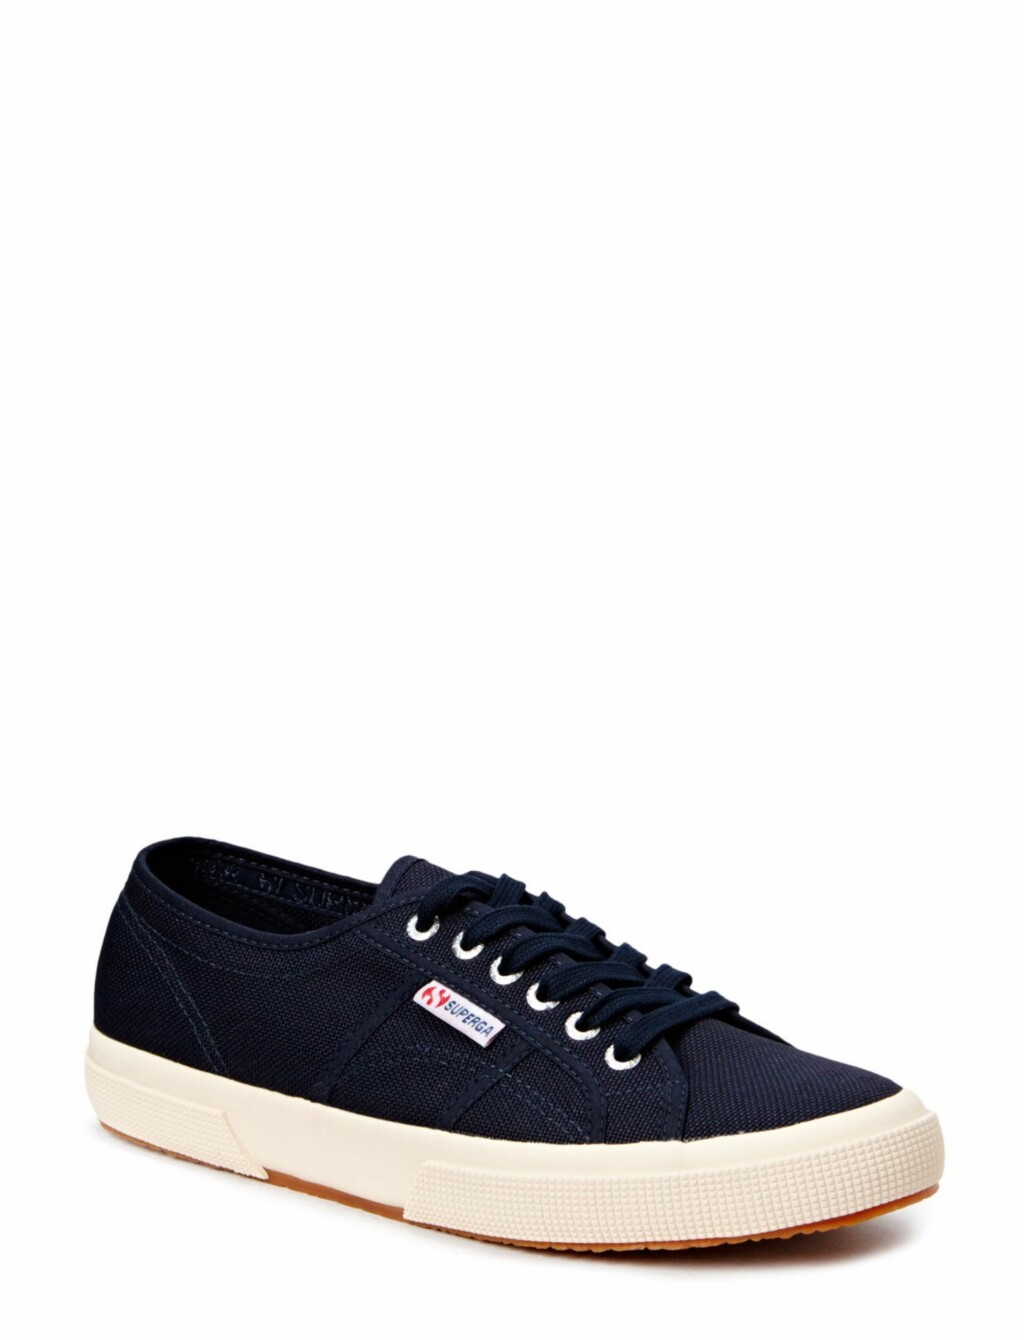 Sneakers fra Superga via Nelly.com | kr 375